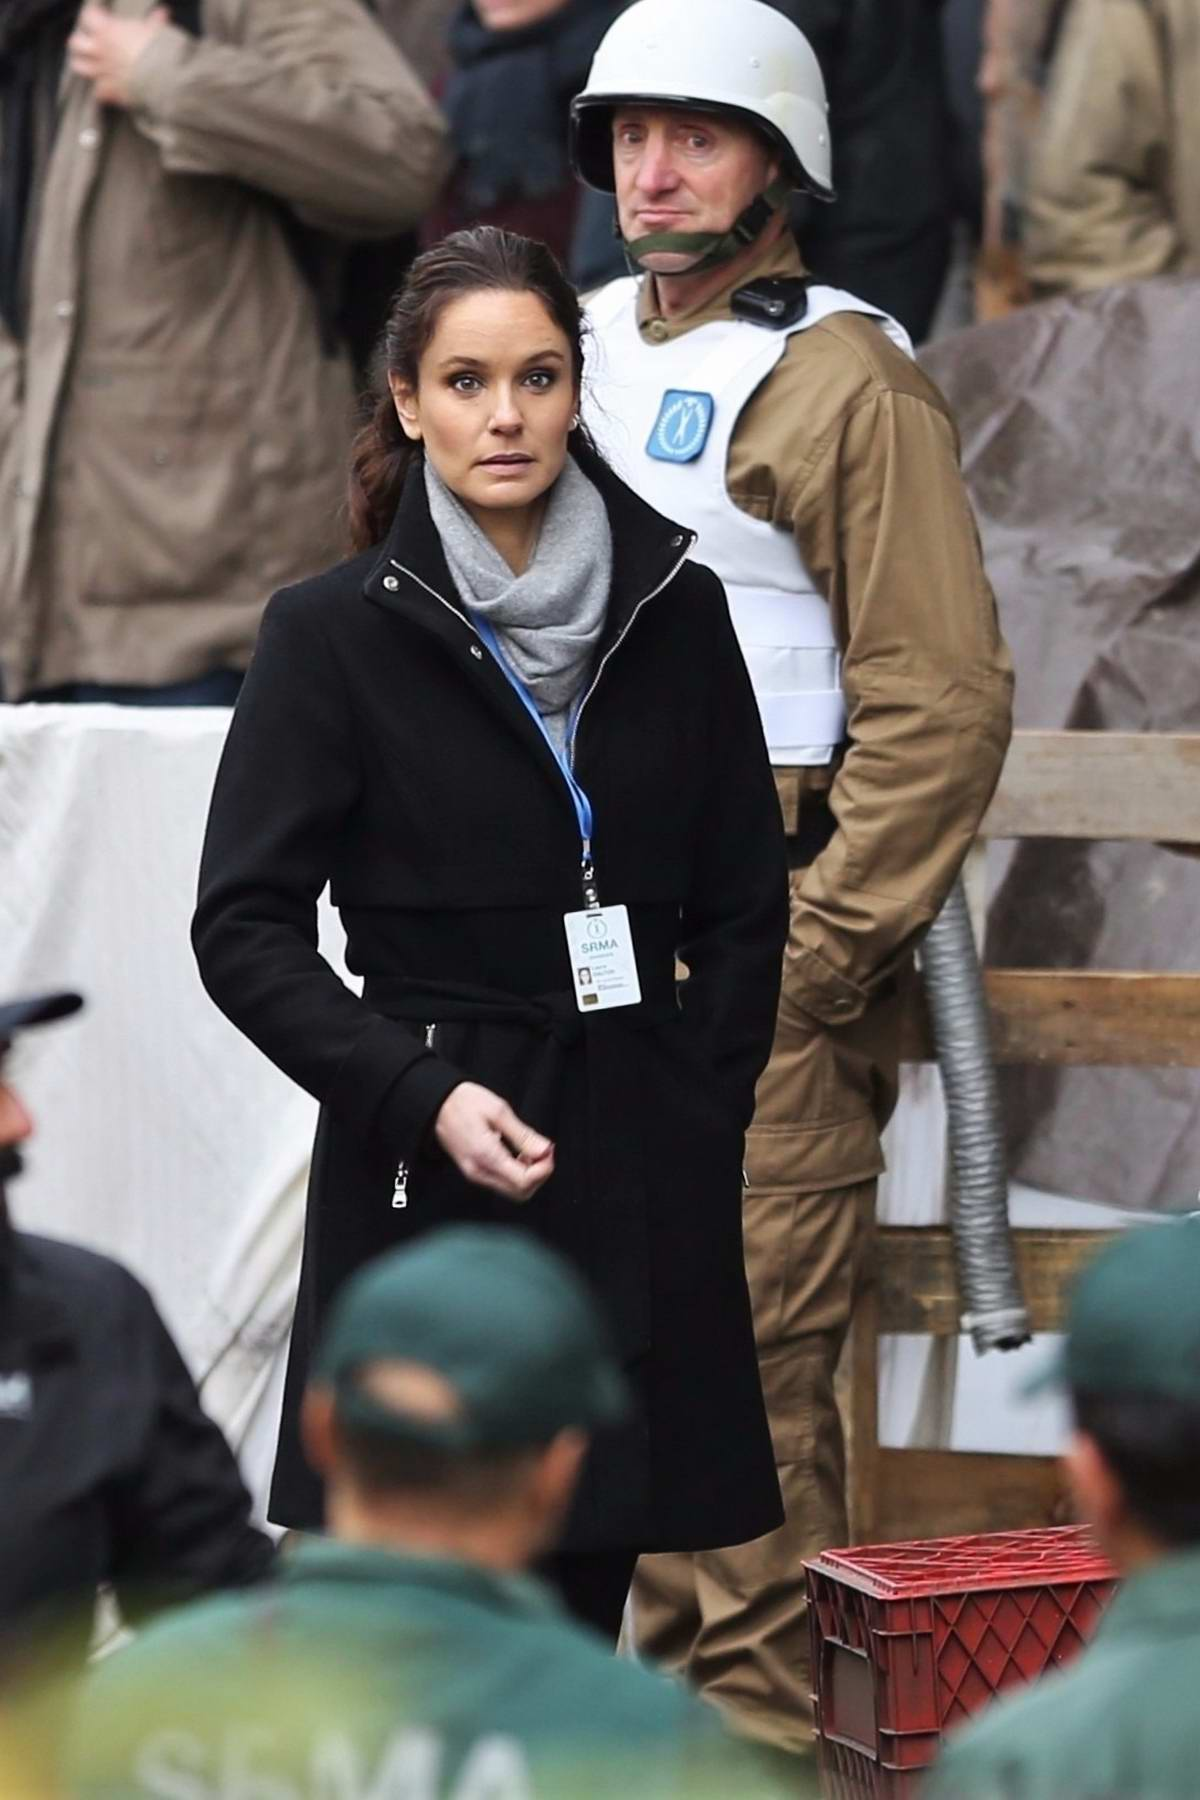 Sarah Wayne Callies on set of TV series 'Colony' filming season 2 in Vancouver, Canada